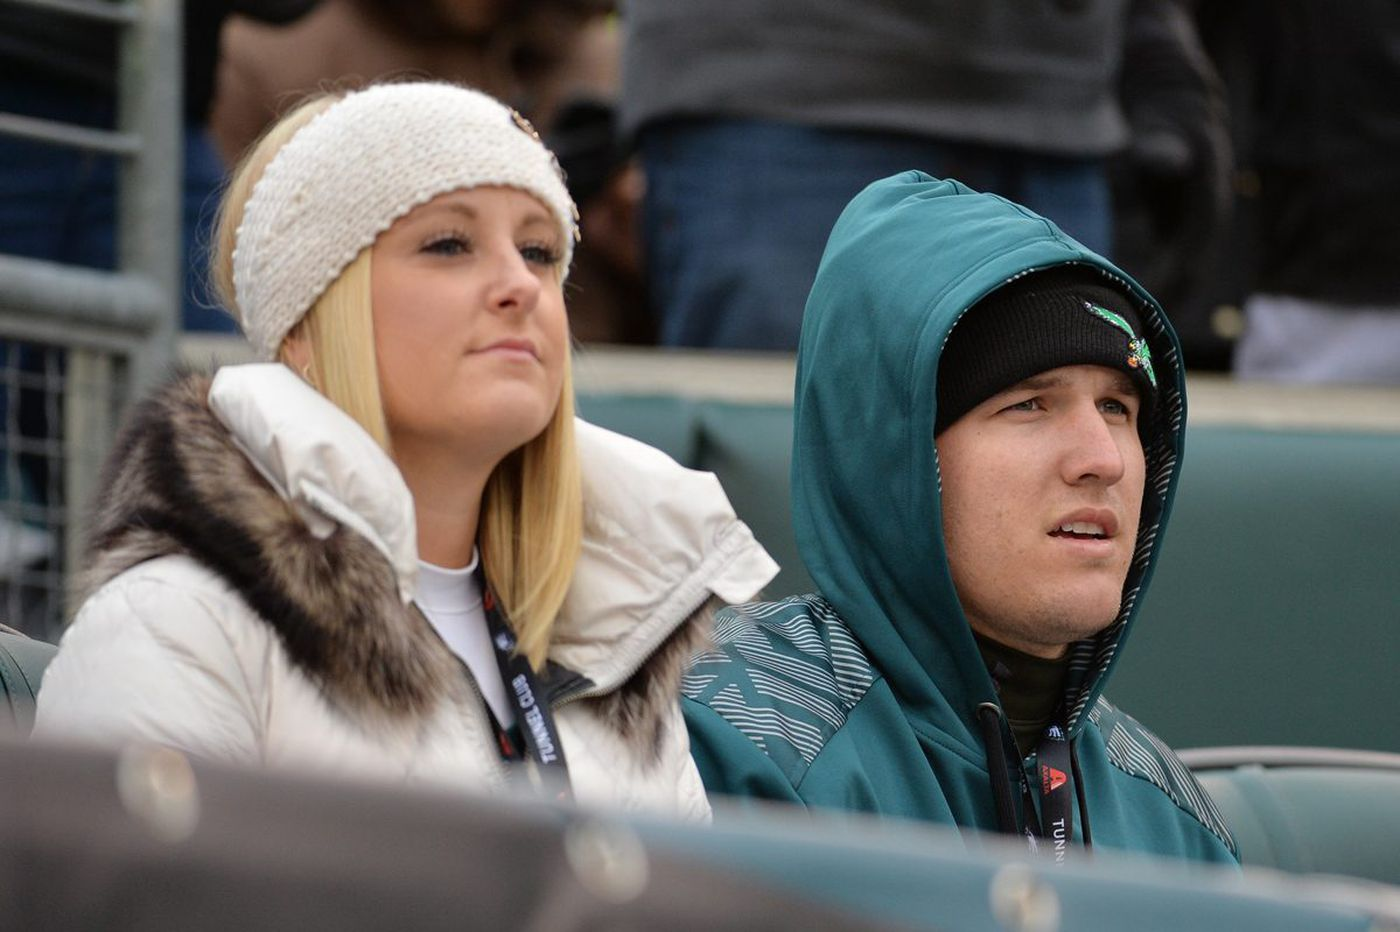 Mike Trout's wife is sick of his texts about snow and cold weather